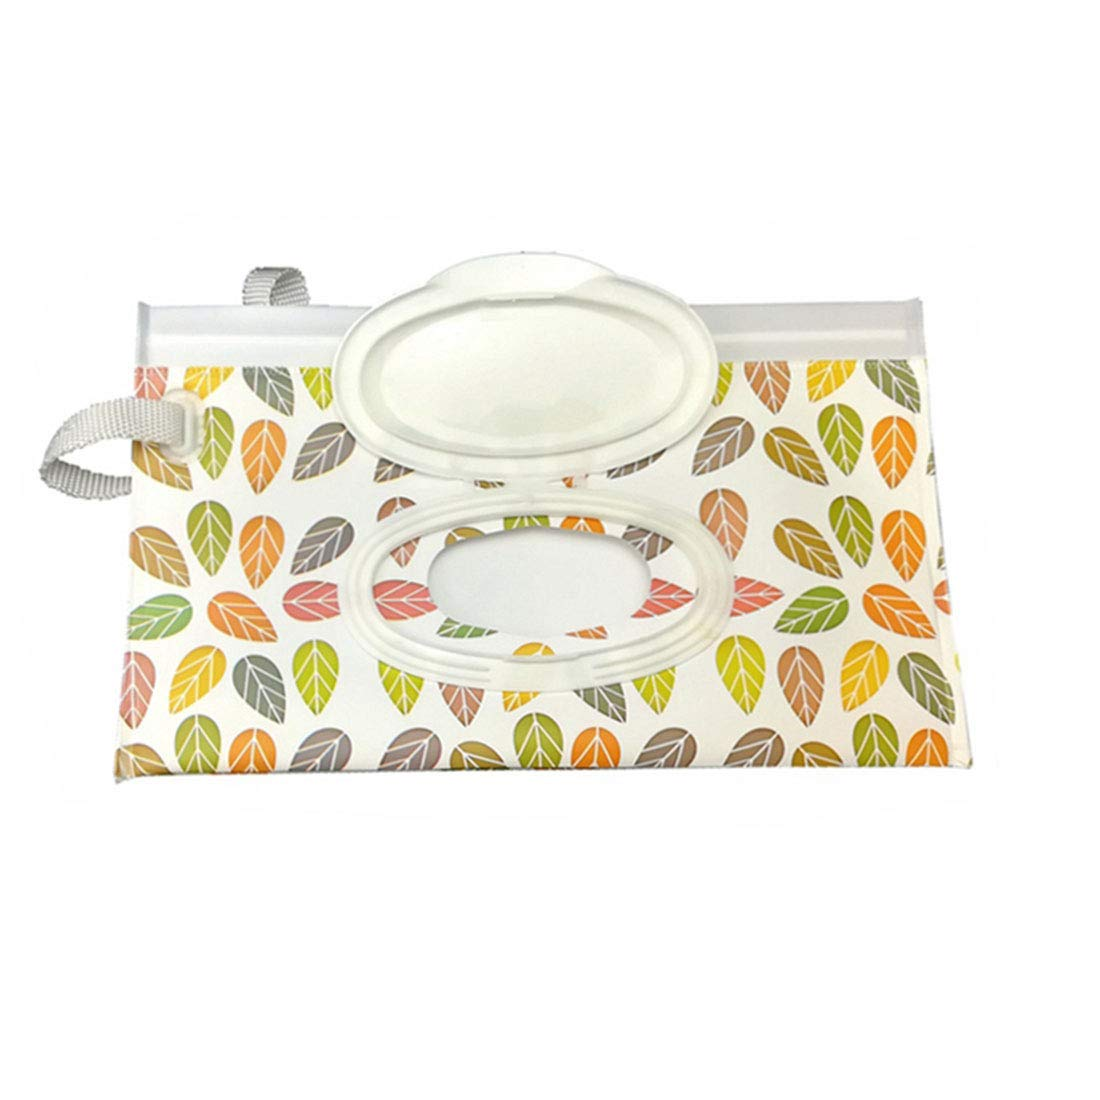 Oraunent Wet Wipe Pouch 3 PC Baby Wipes Dispenser Case Holder Reusable Wipe Bag Container Leaves by Oraunent